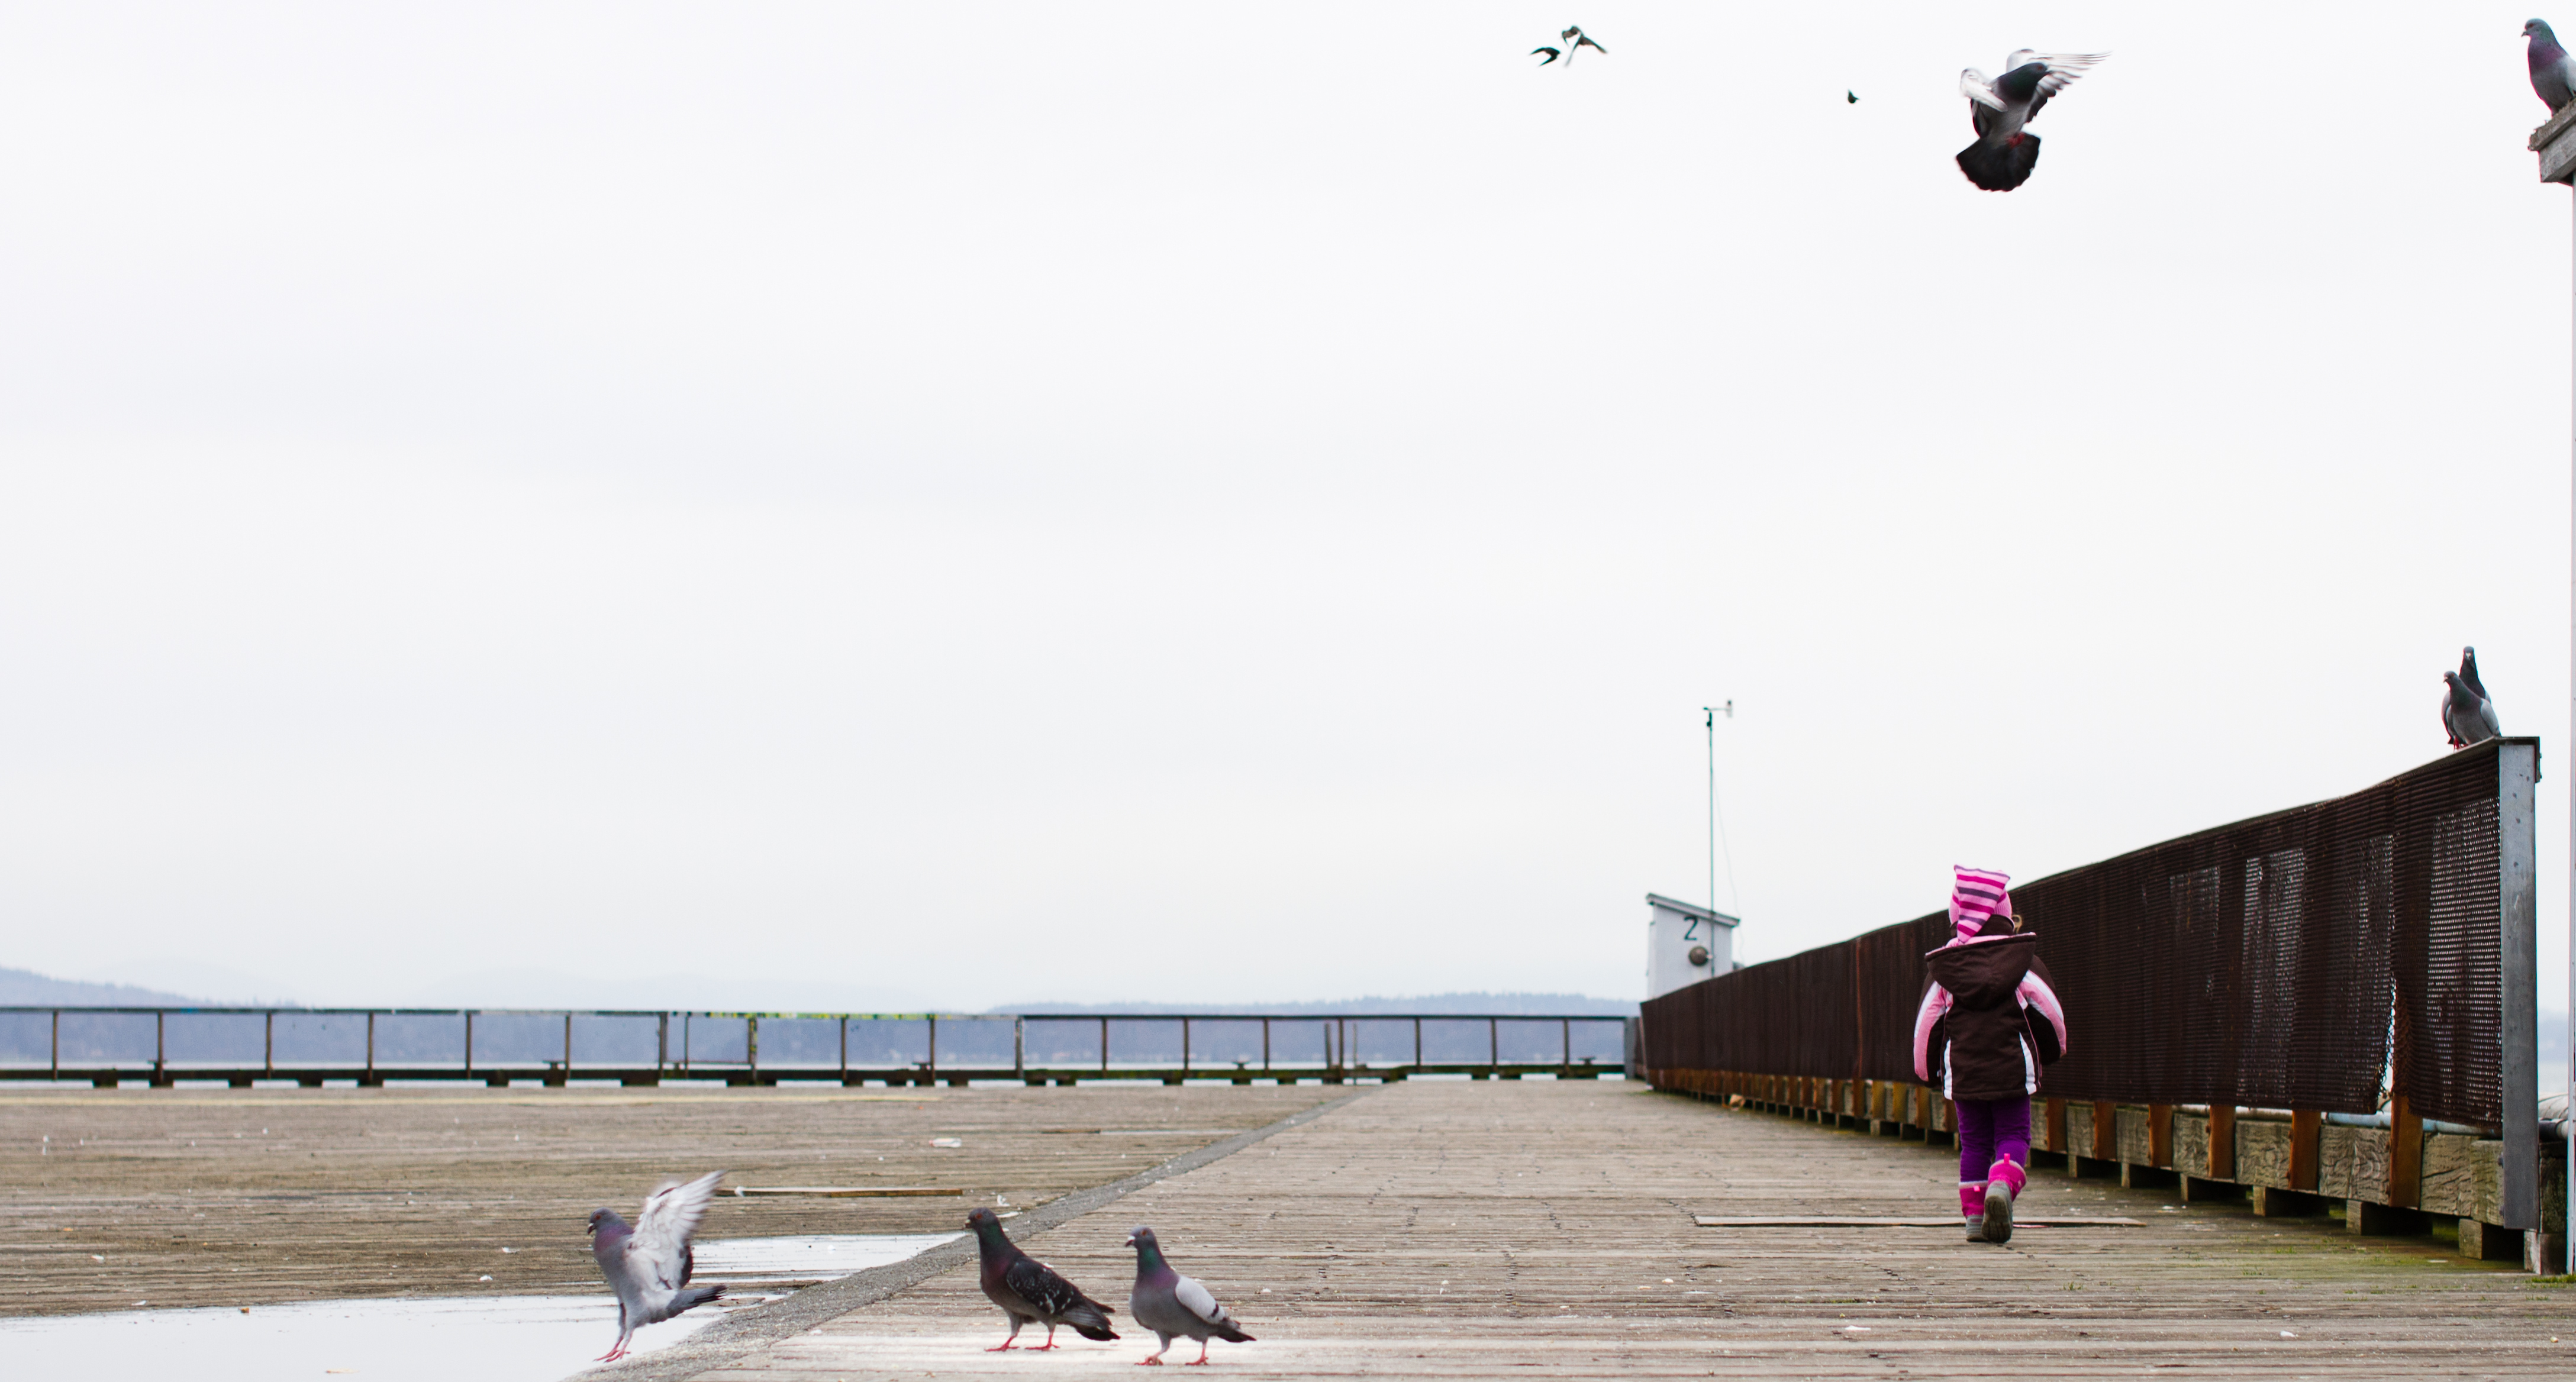 A large, flat, wooden pier on an overcast day. To the right, a young child dressed in pink runs ahead. Pigeons are all around, including three in the center of the foreground.